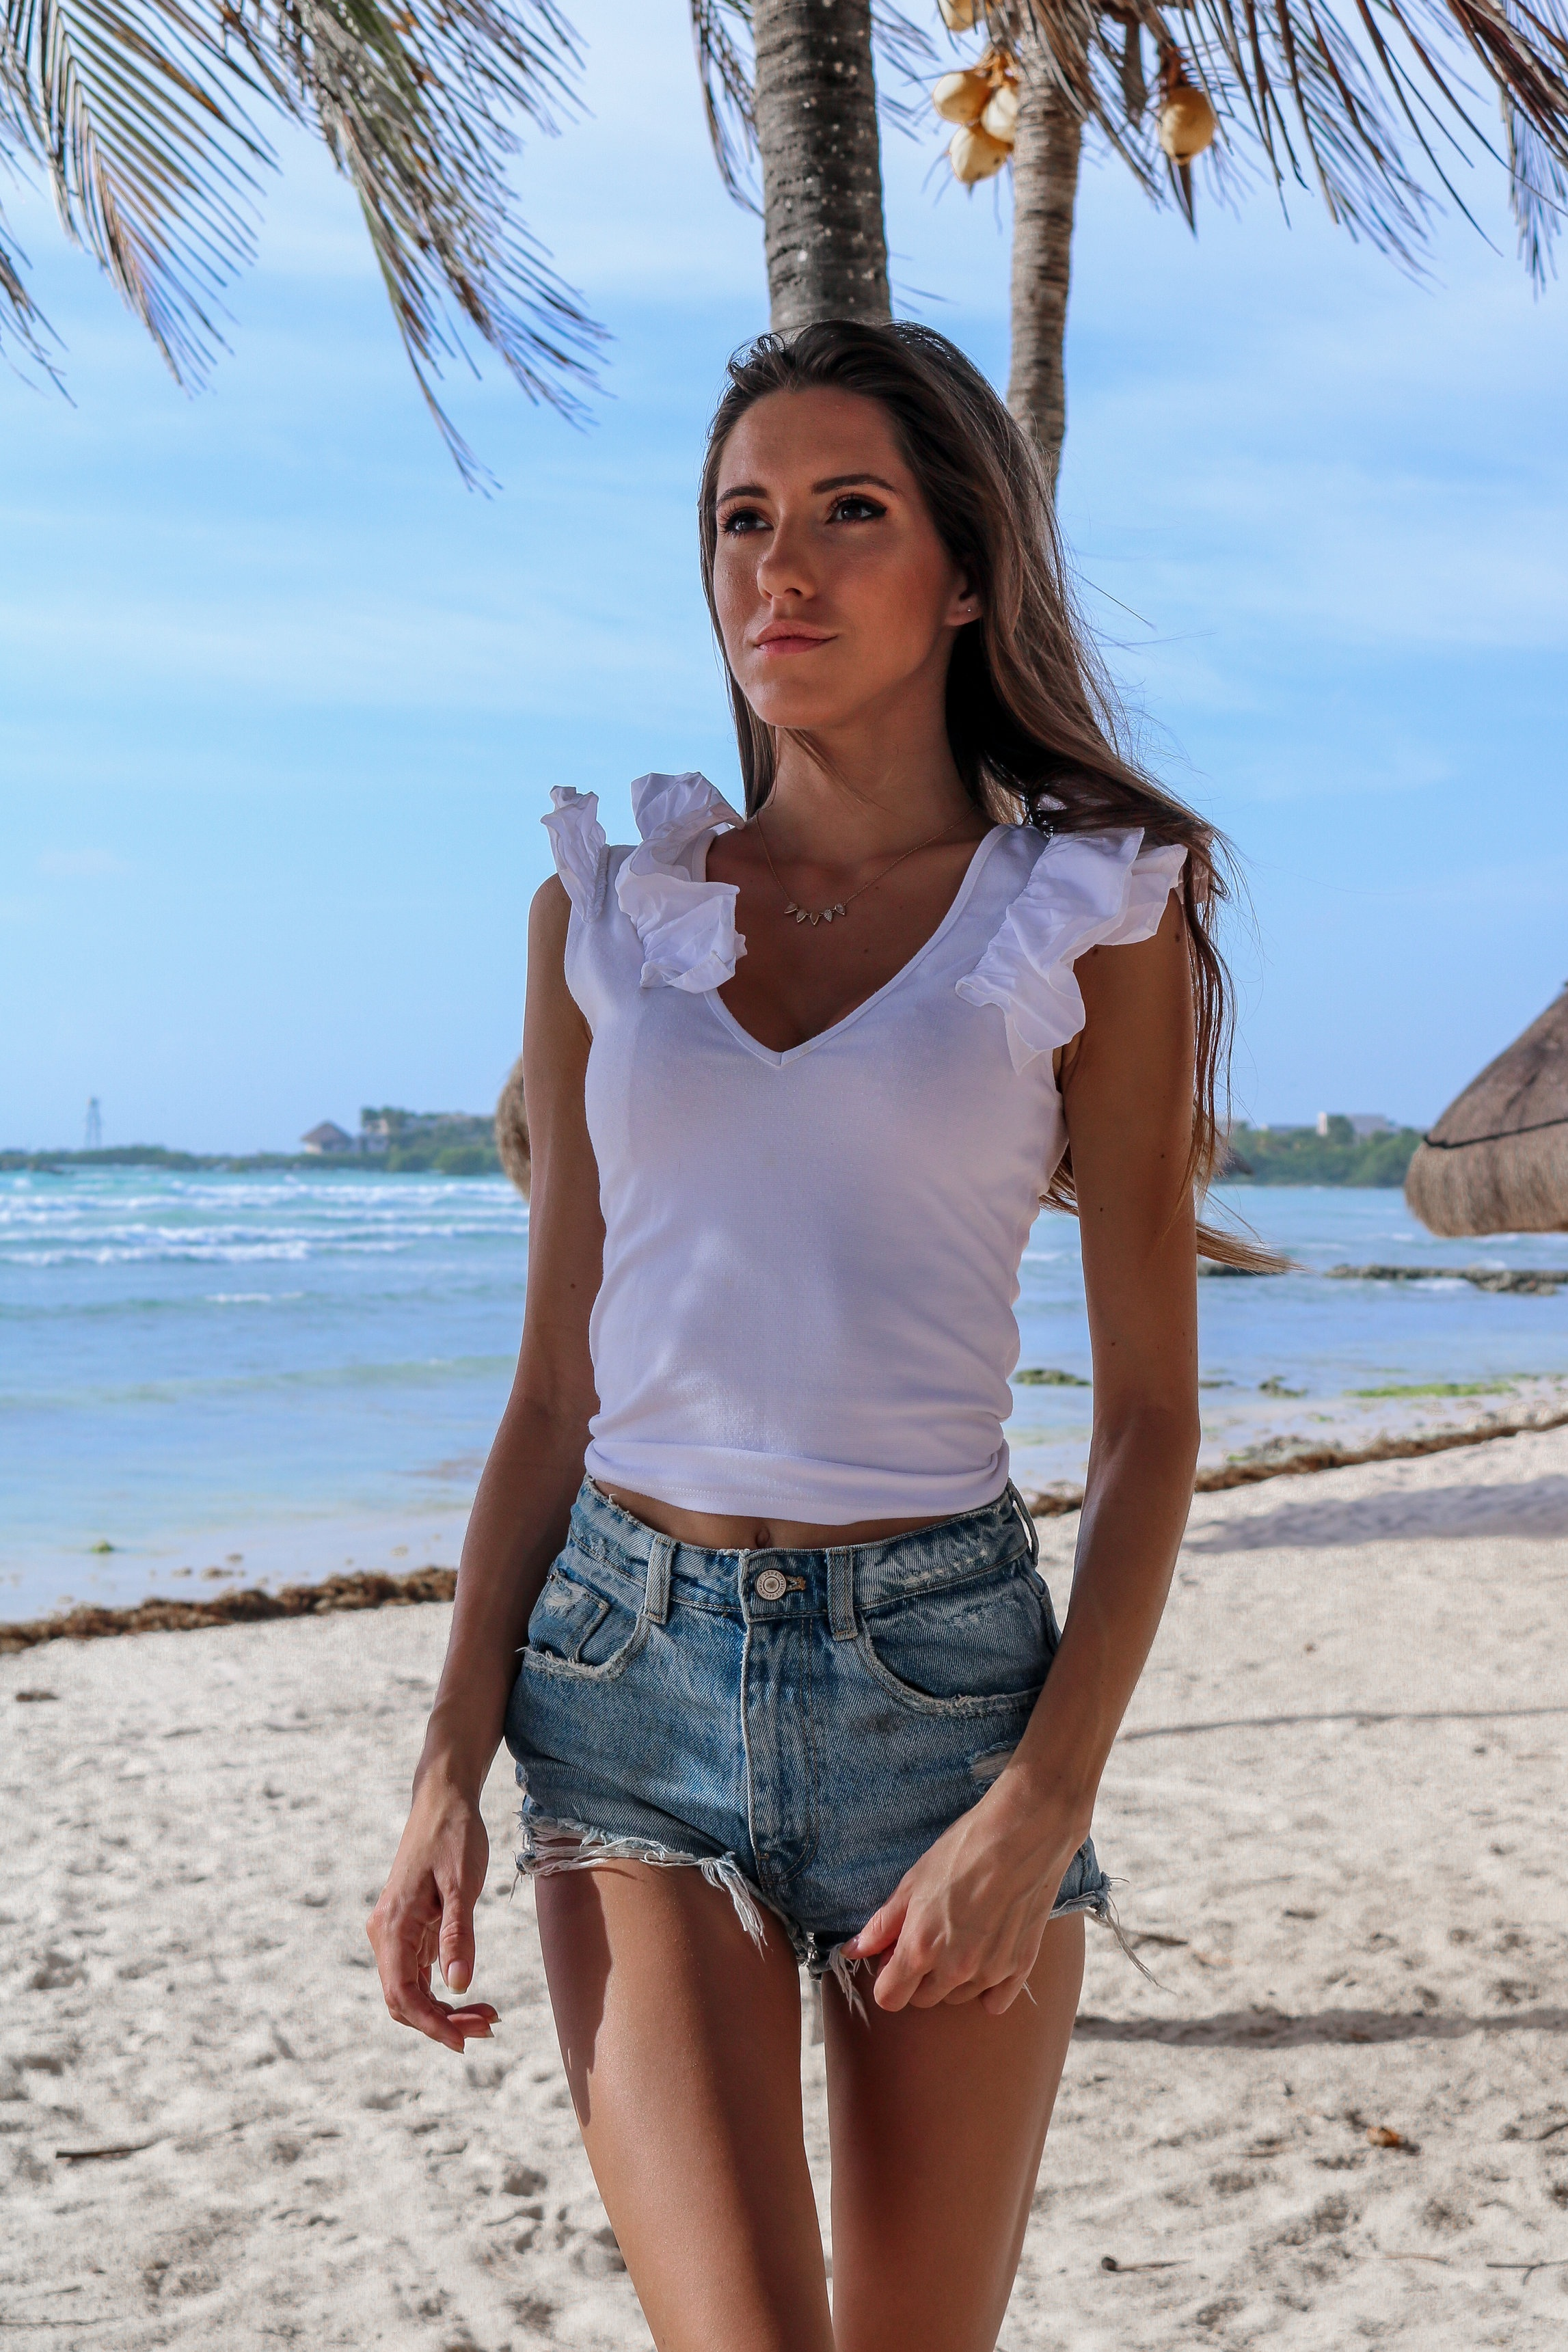 The+Hungarian+Brunette+resort+2019%2C+vacation+style+my+mexico+outfits